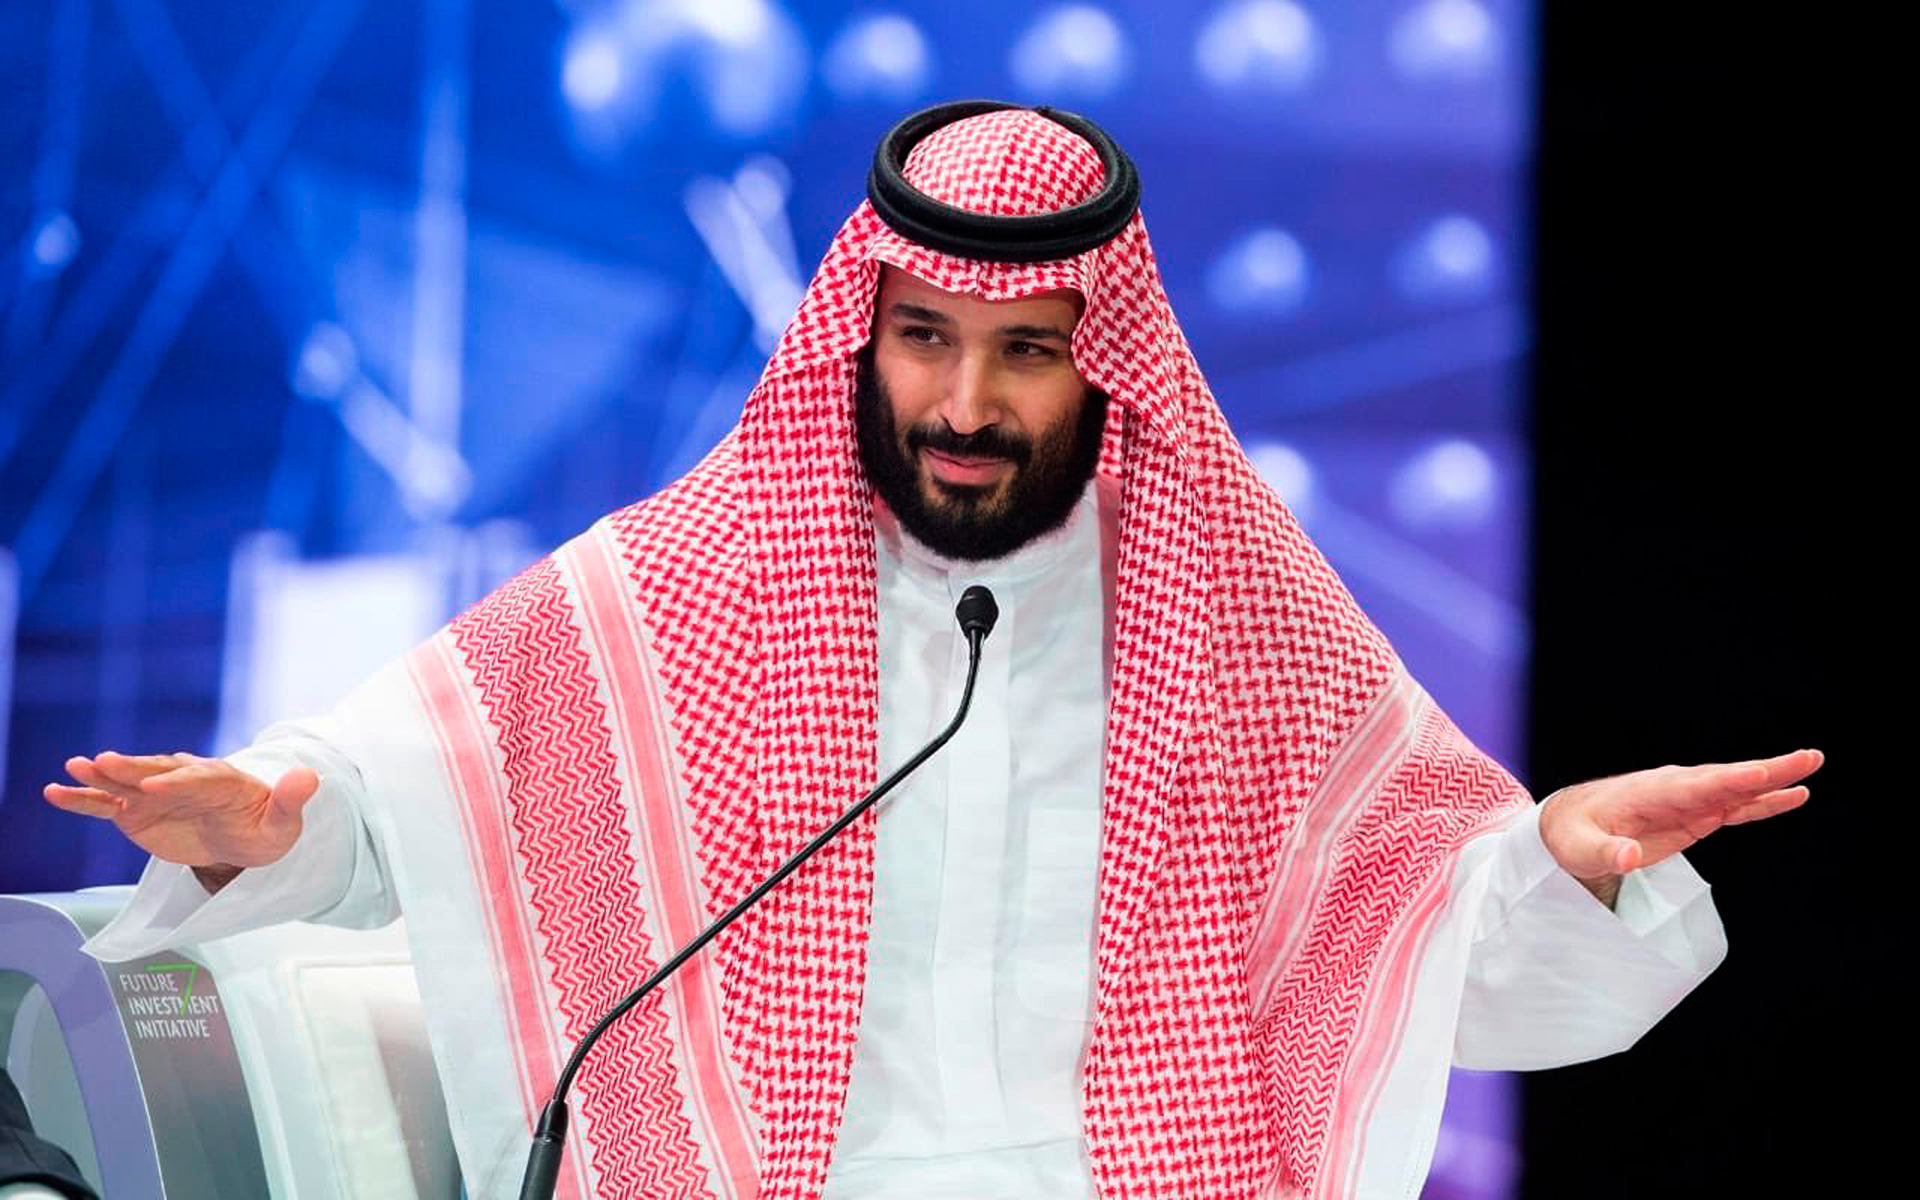 Saudis flex financial muscle to punish Turkey over Jamal Khashoggi murder claims